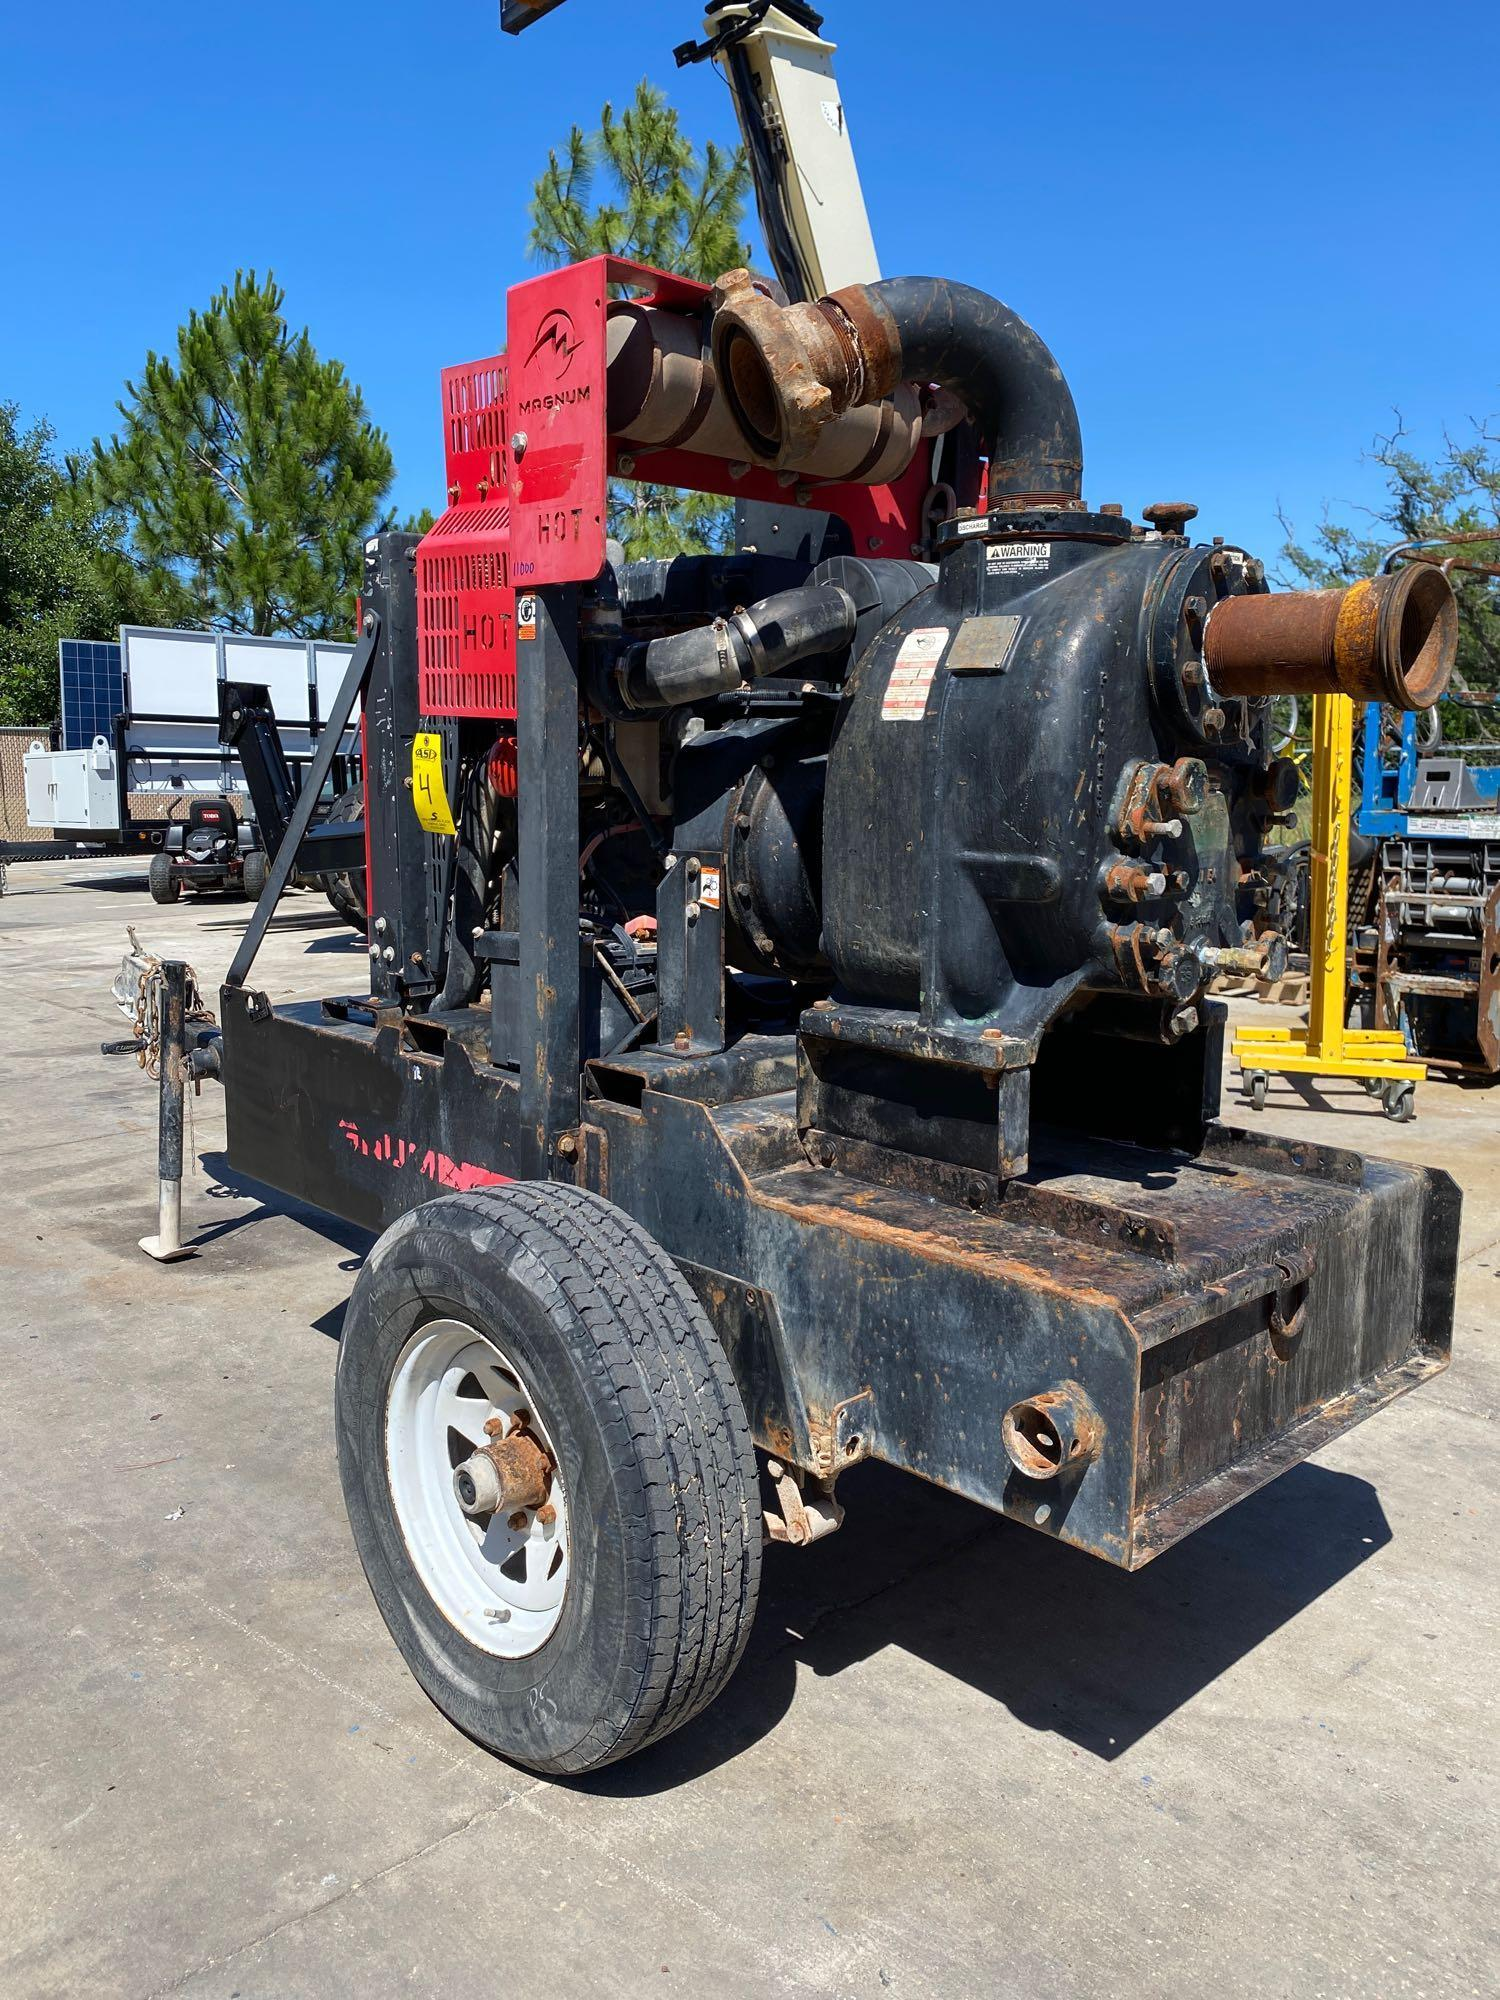 TRAILER MOUNTED MAGNUM 4 INCH DIESEL PUMP, RUNS AND OPERATES - Image 7 of 9